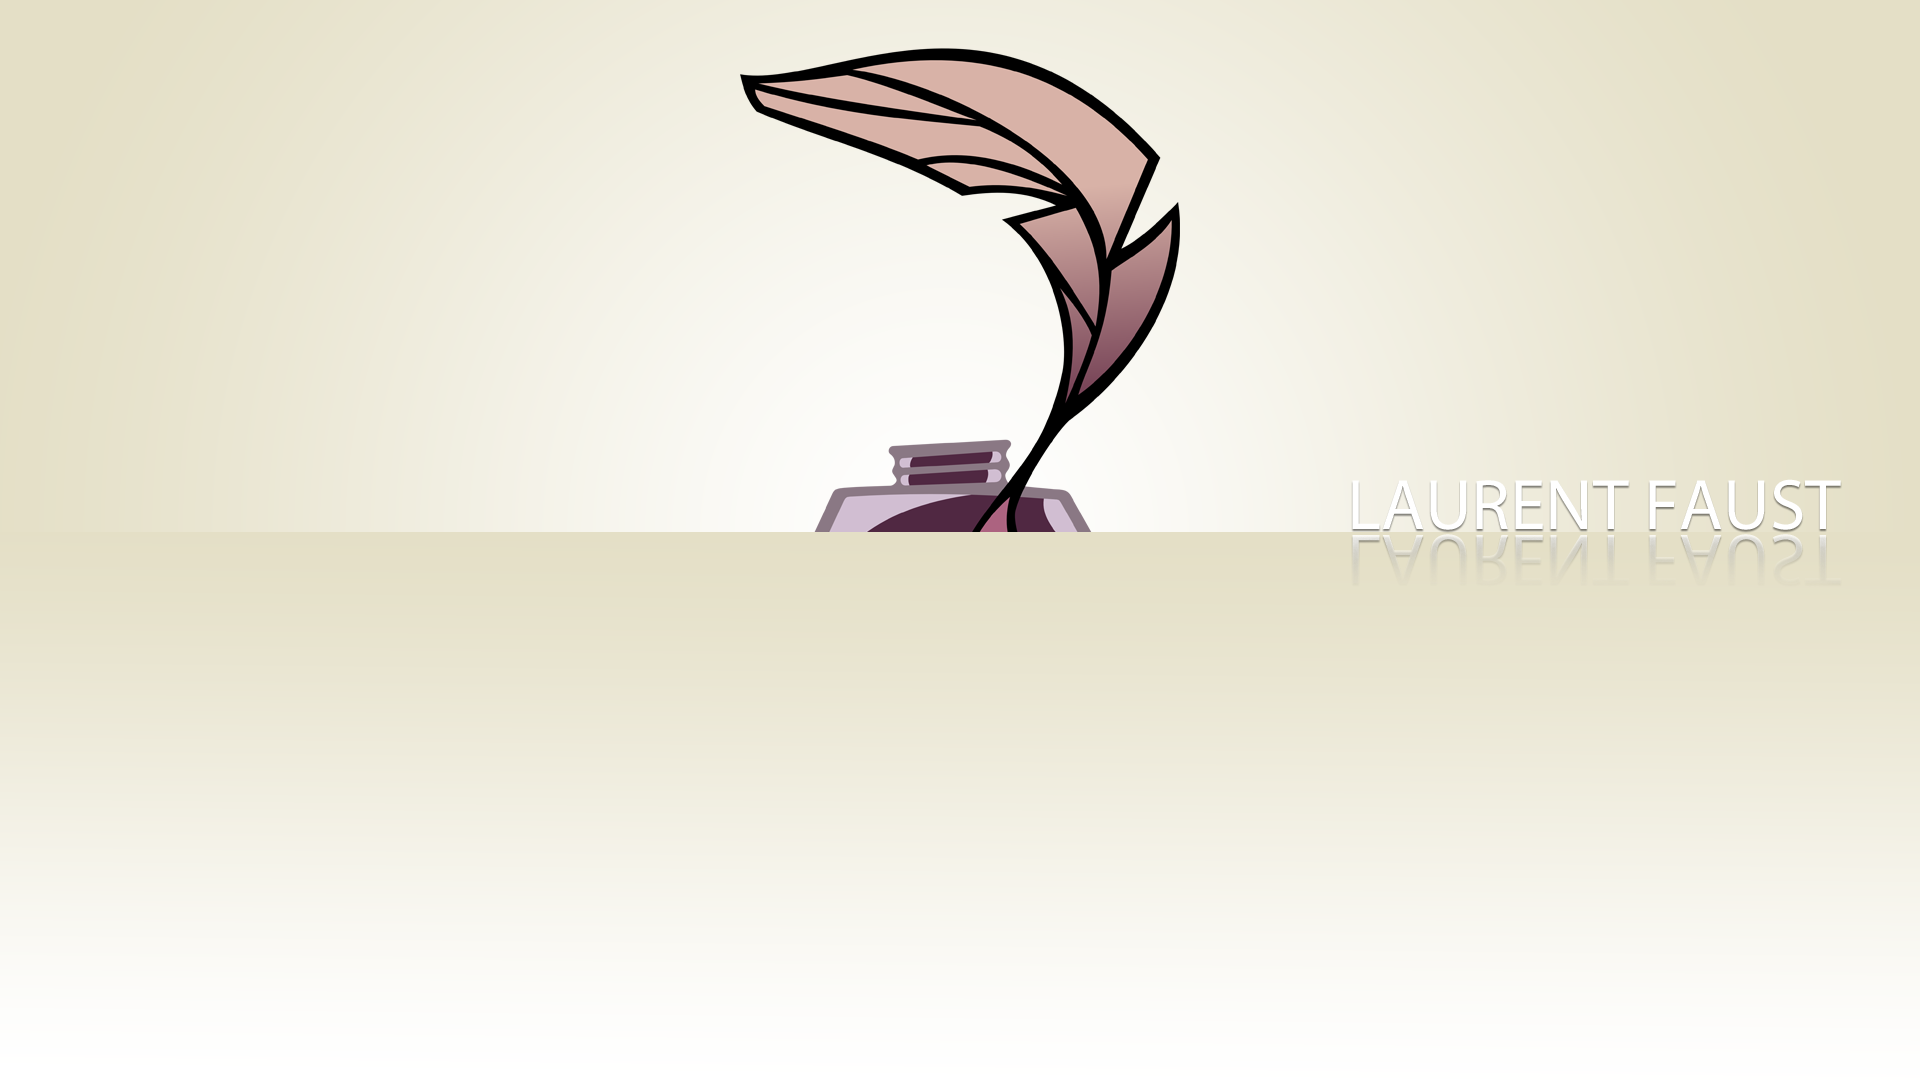 Lauren Faust Minimalistic Wallpaper by BlueDragonHans and The-Smiling-Pony